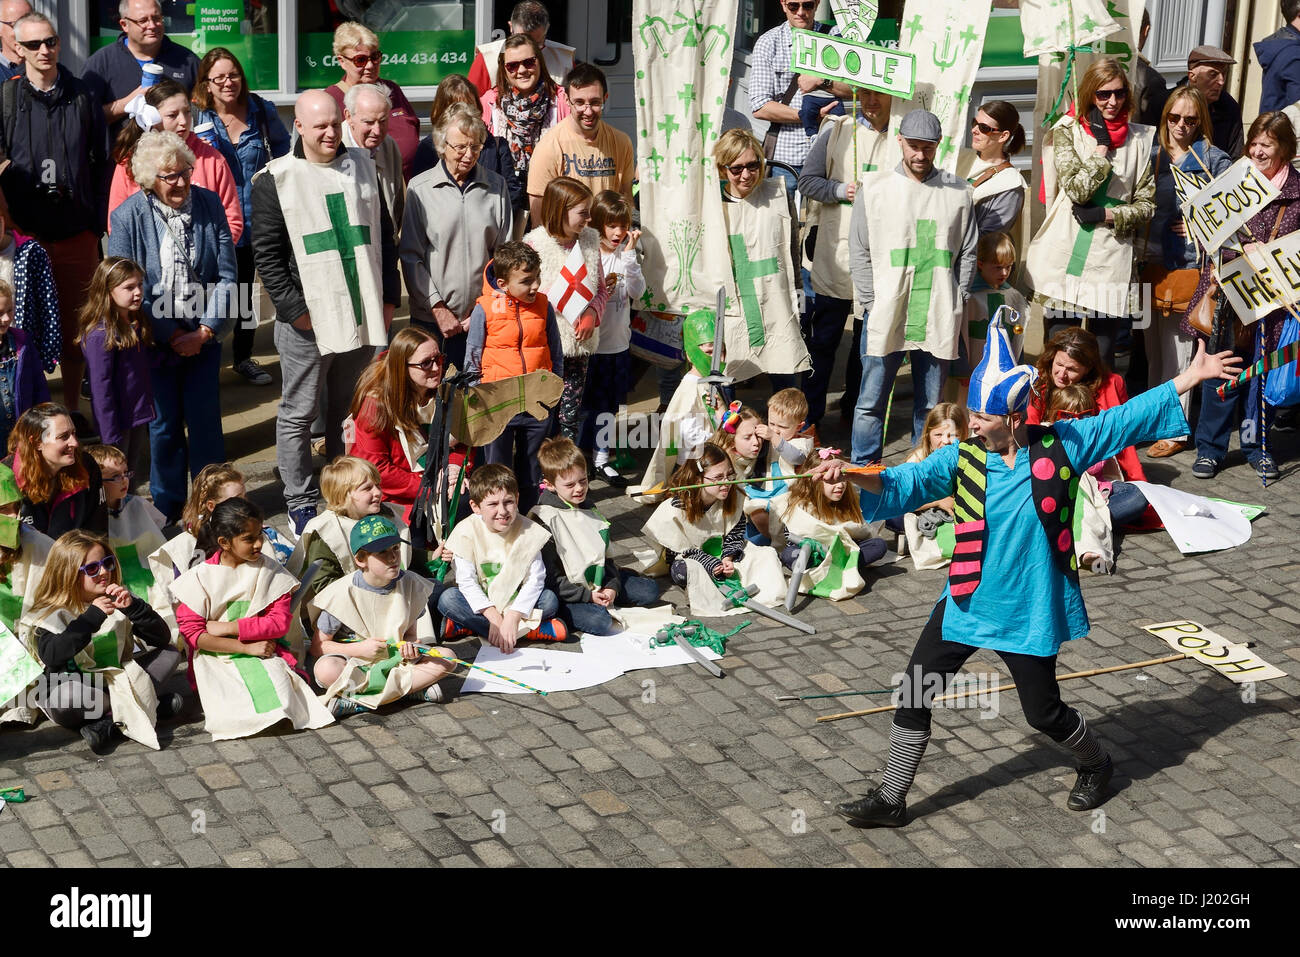 Chester, UK. 23rd April 2017. The St George's day street theatre performance in Chester city centre. Credit: - Stock Image